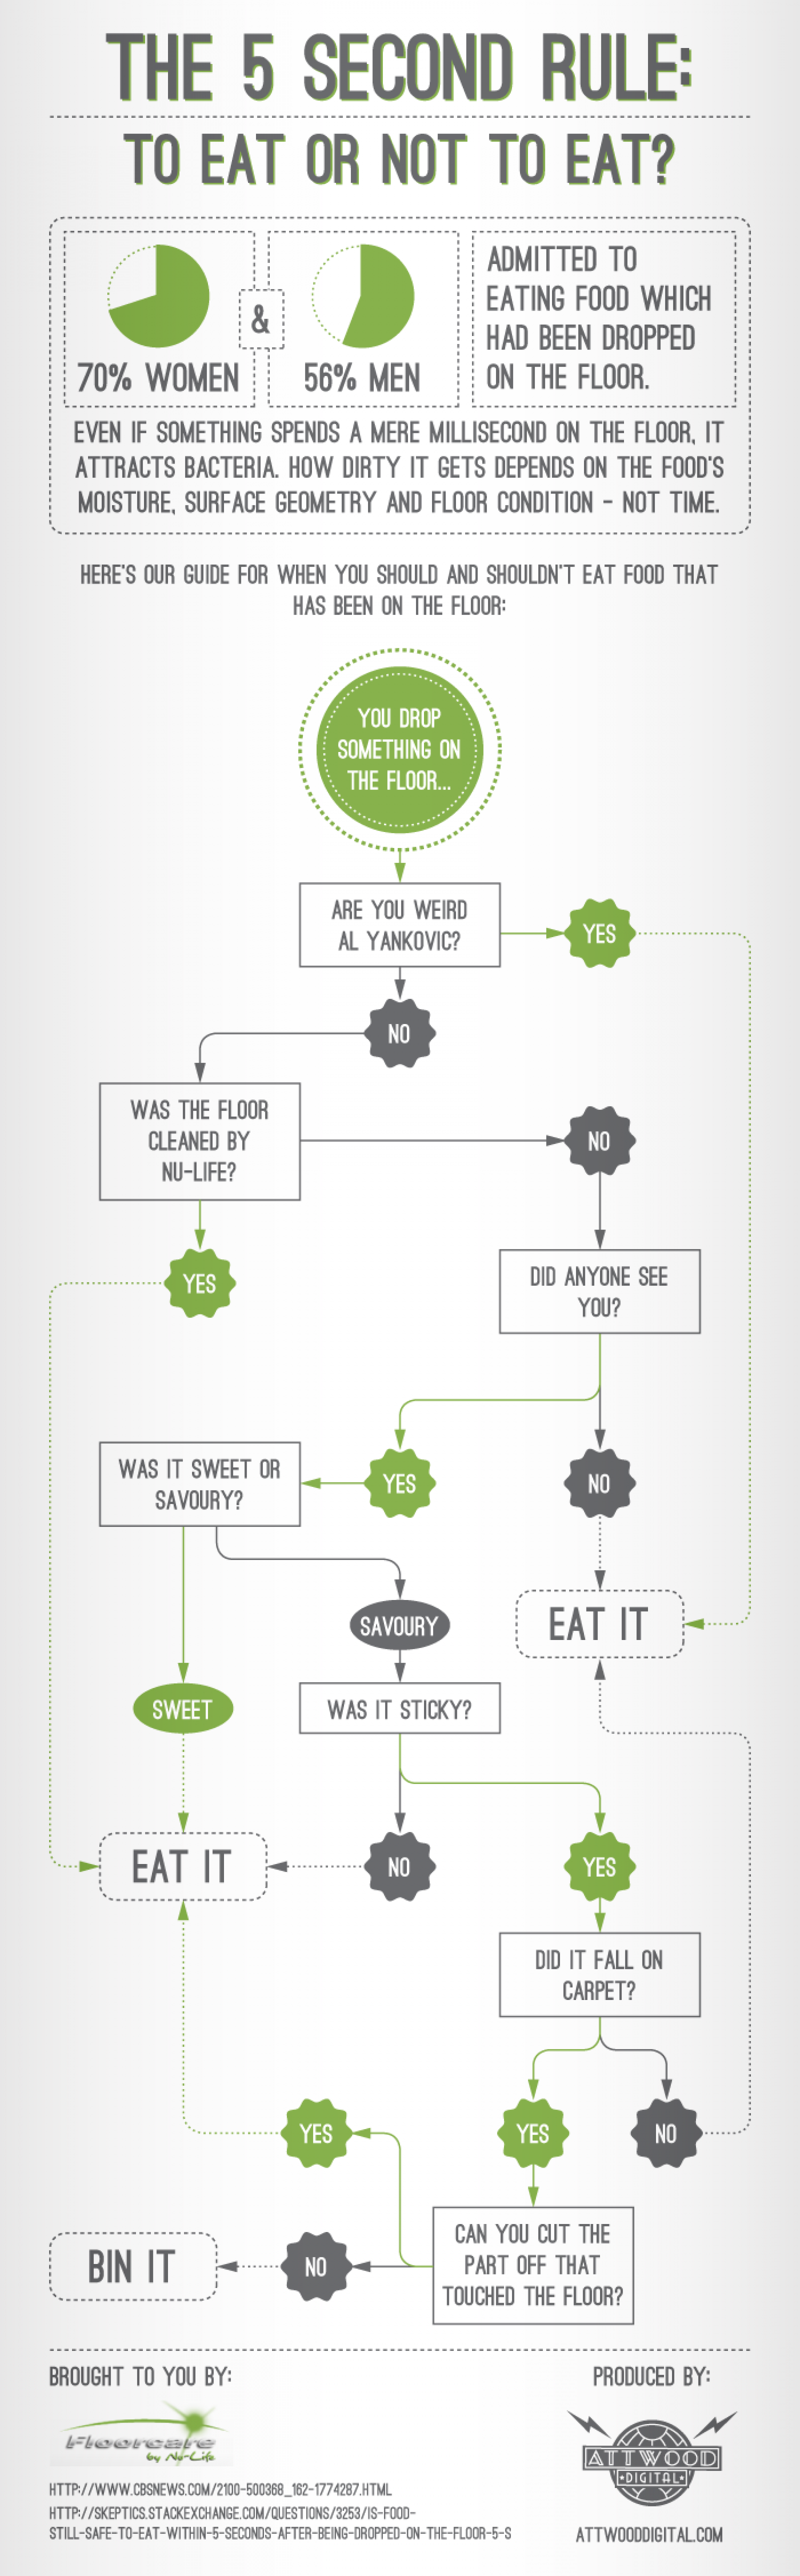 The 5 Second Rule: To Eat Or Not To Eat? Infographic